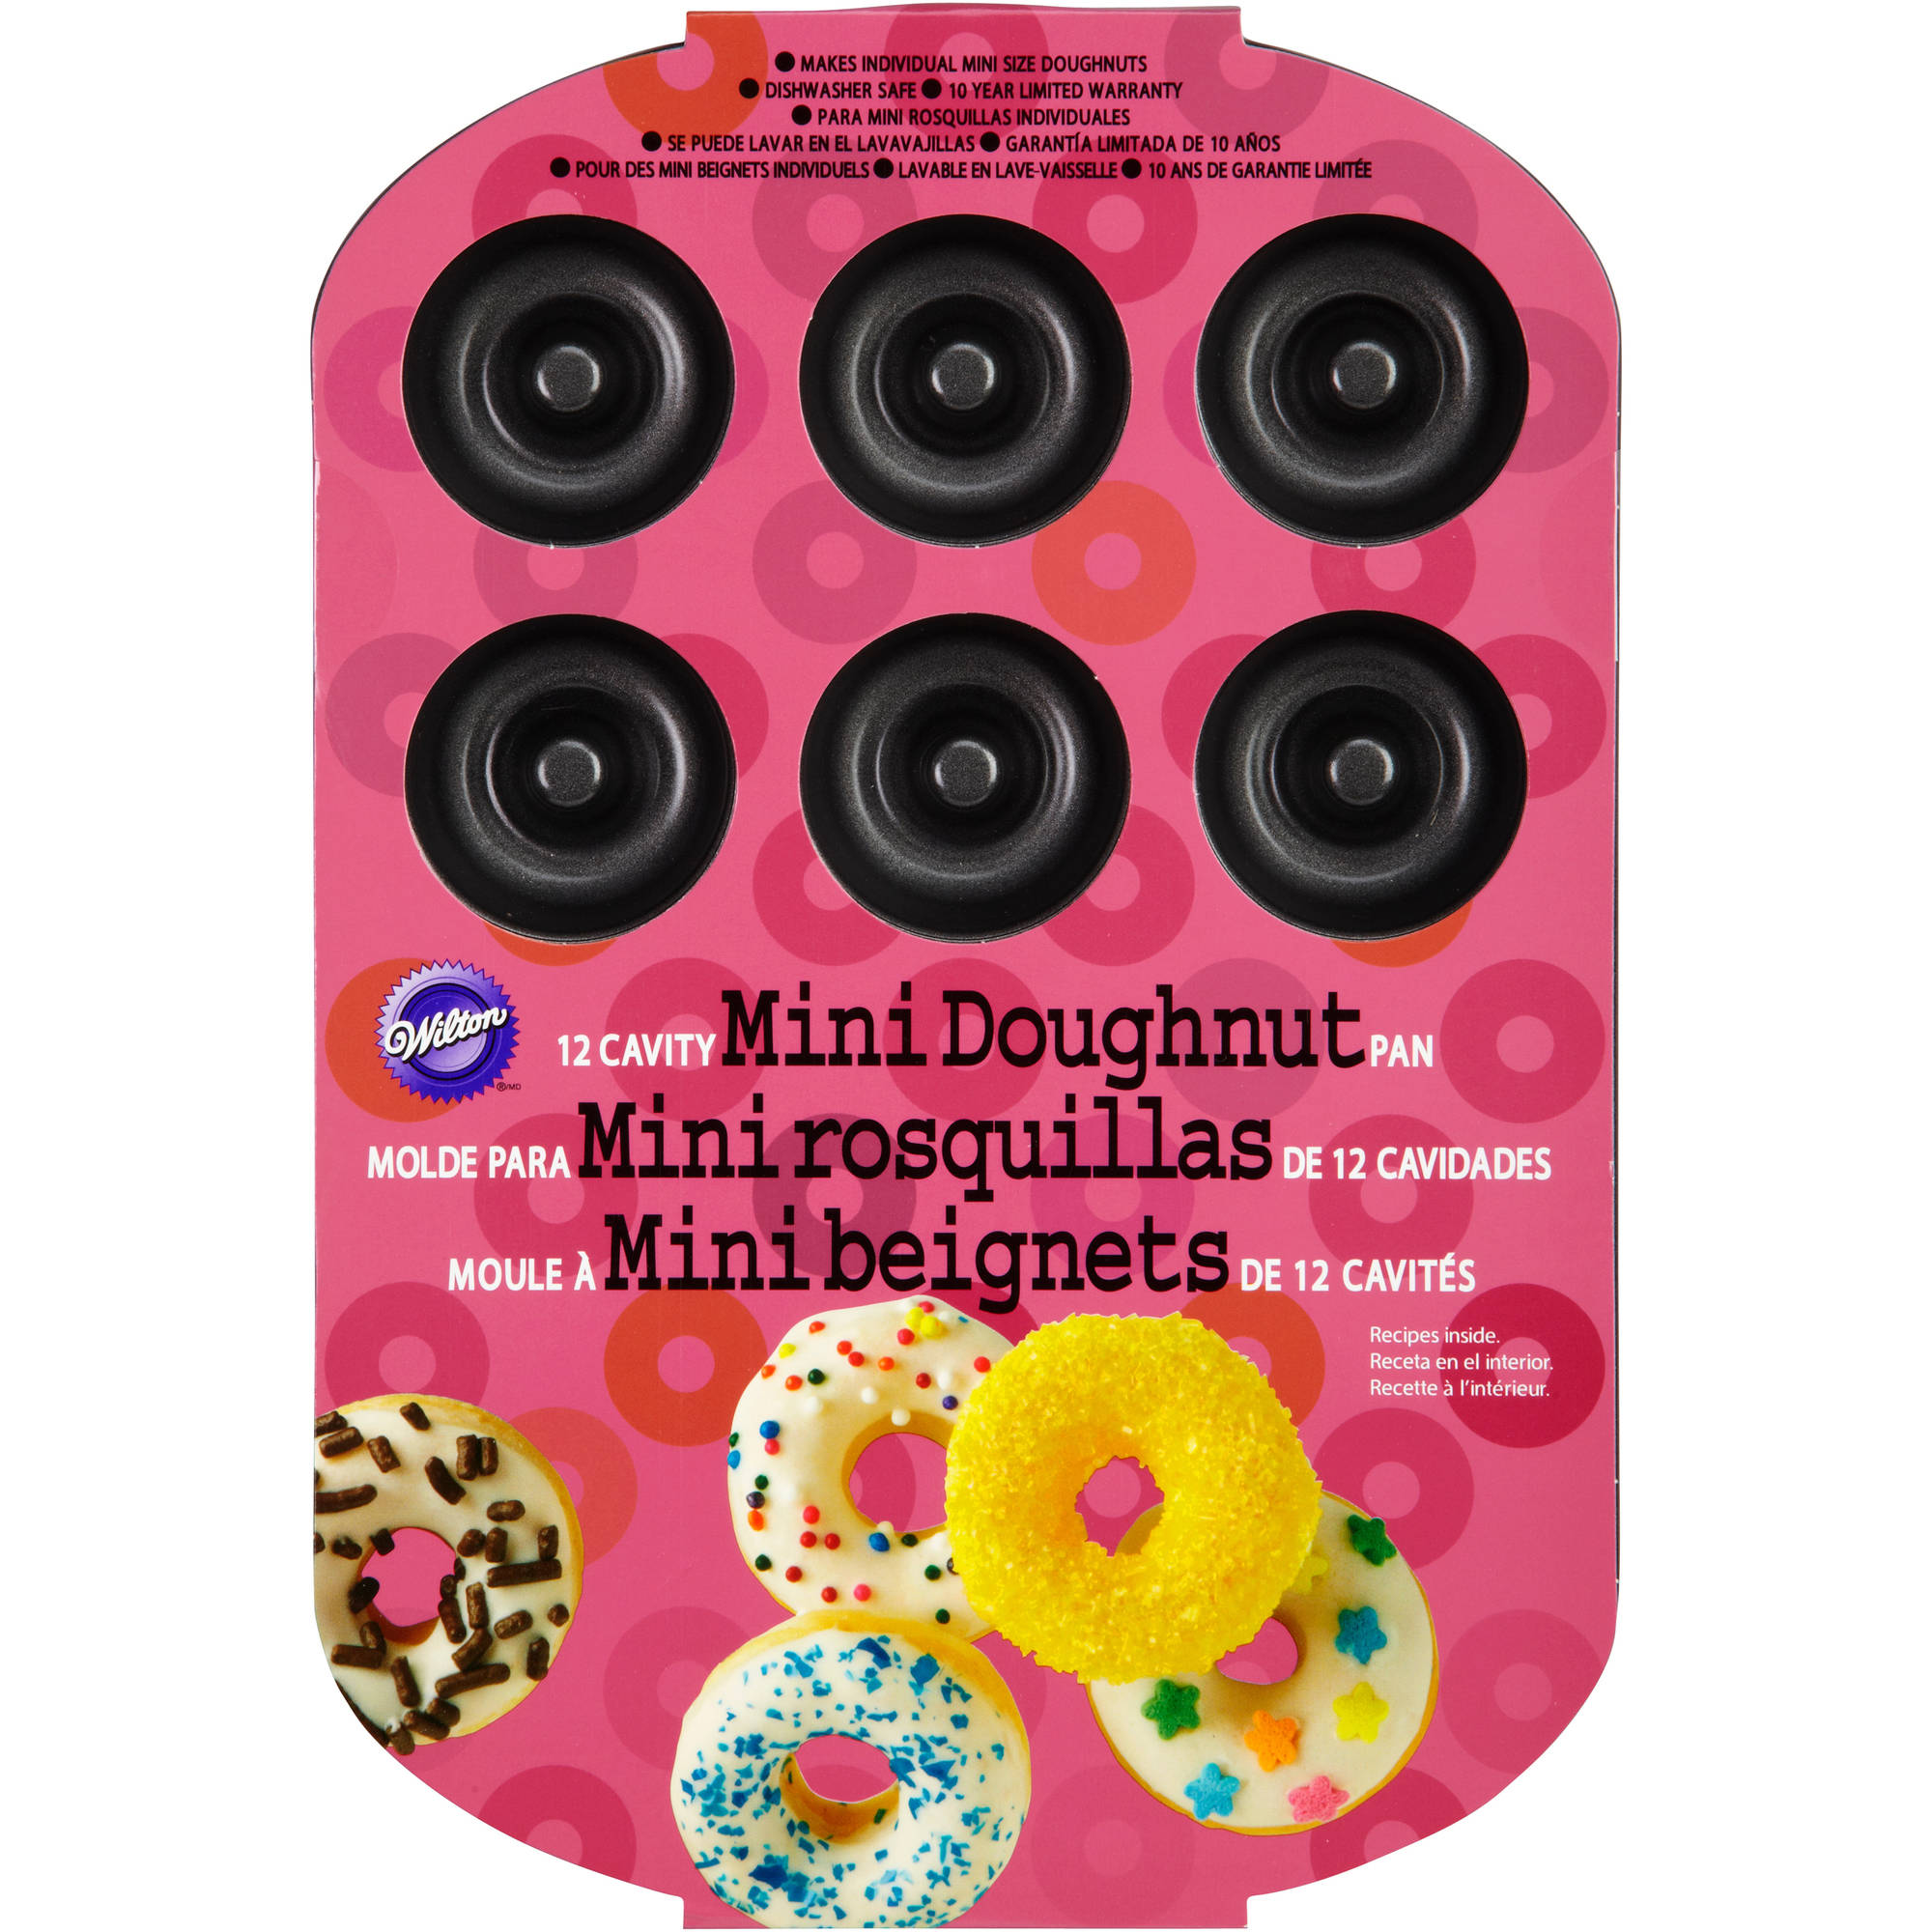 Wilton 12-Cavity Mini Doughnut Pan 2105-0614